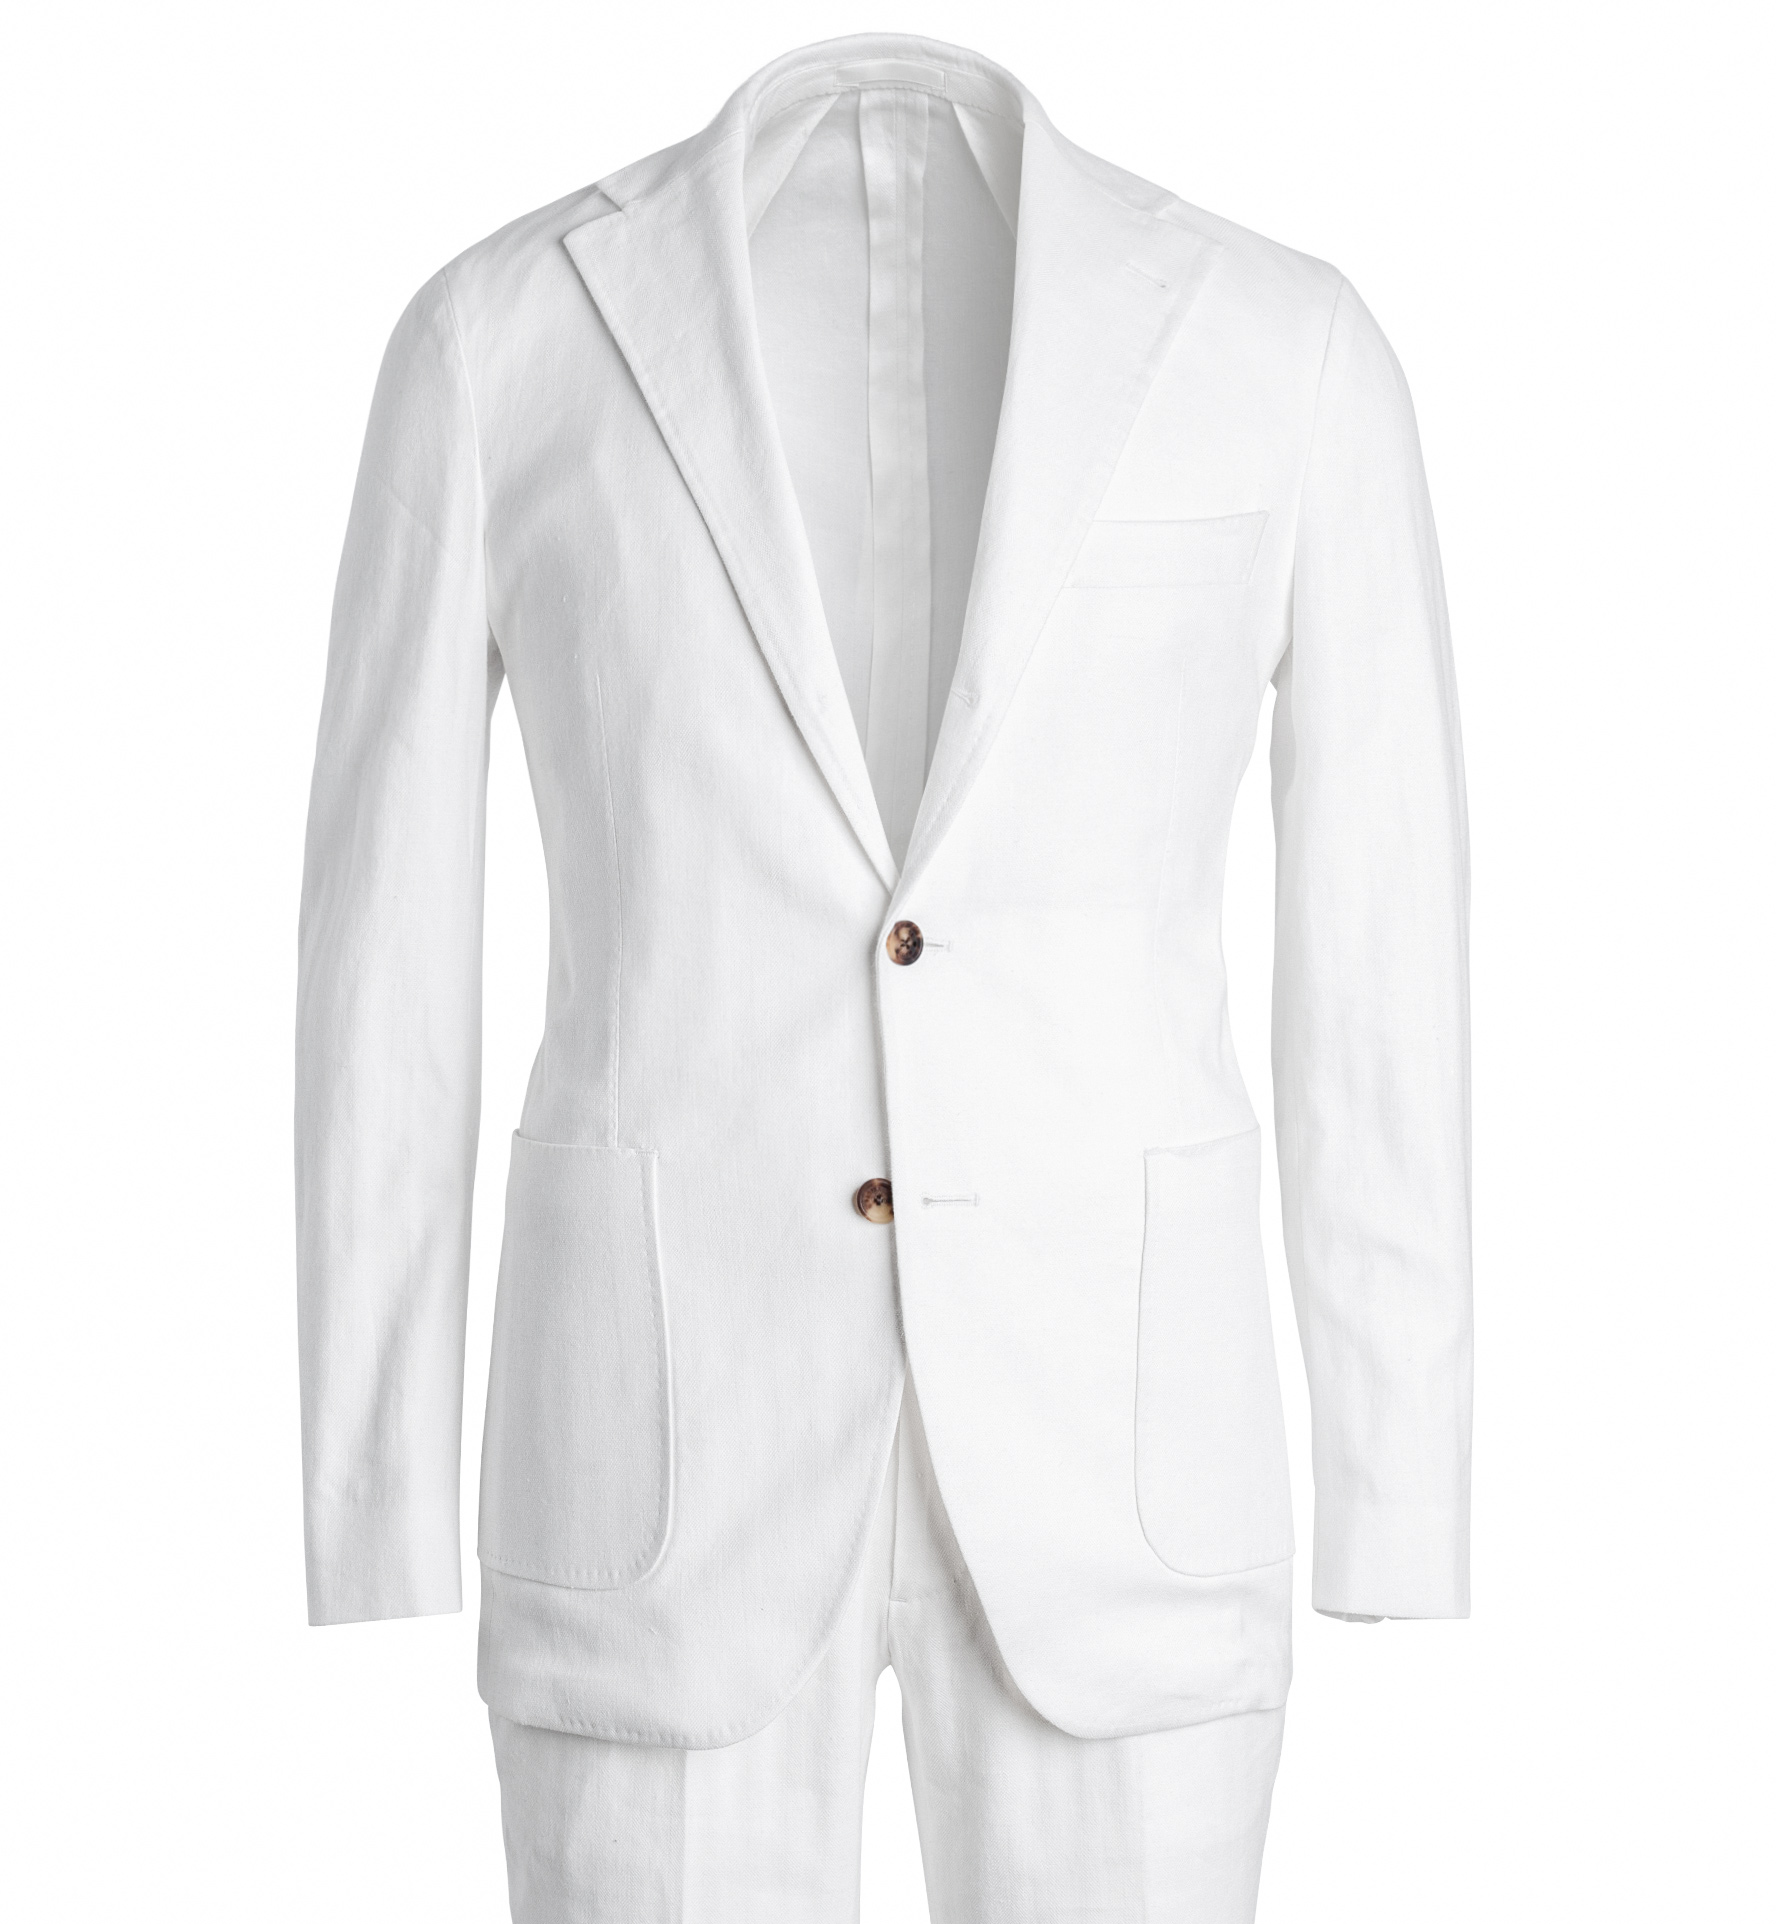 Zoom Image of Waverly White Cotton and Linen Stretch Herringbone Suit